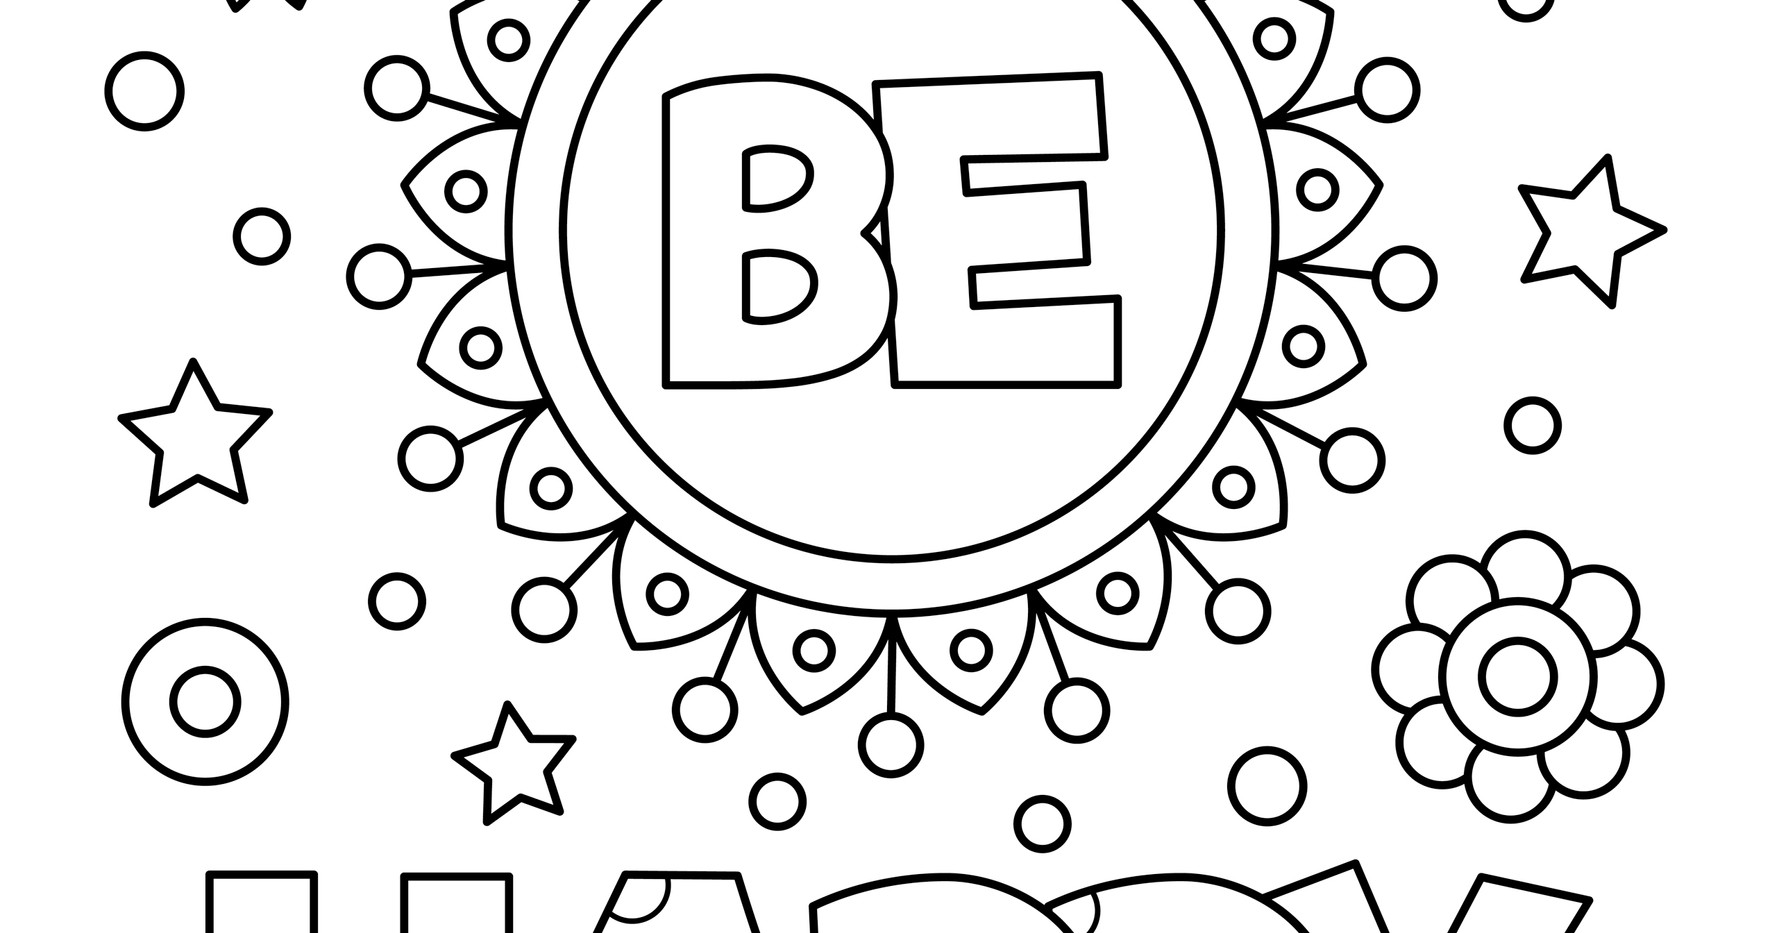 Be Happy Coloring Page.jpg